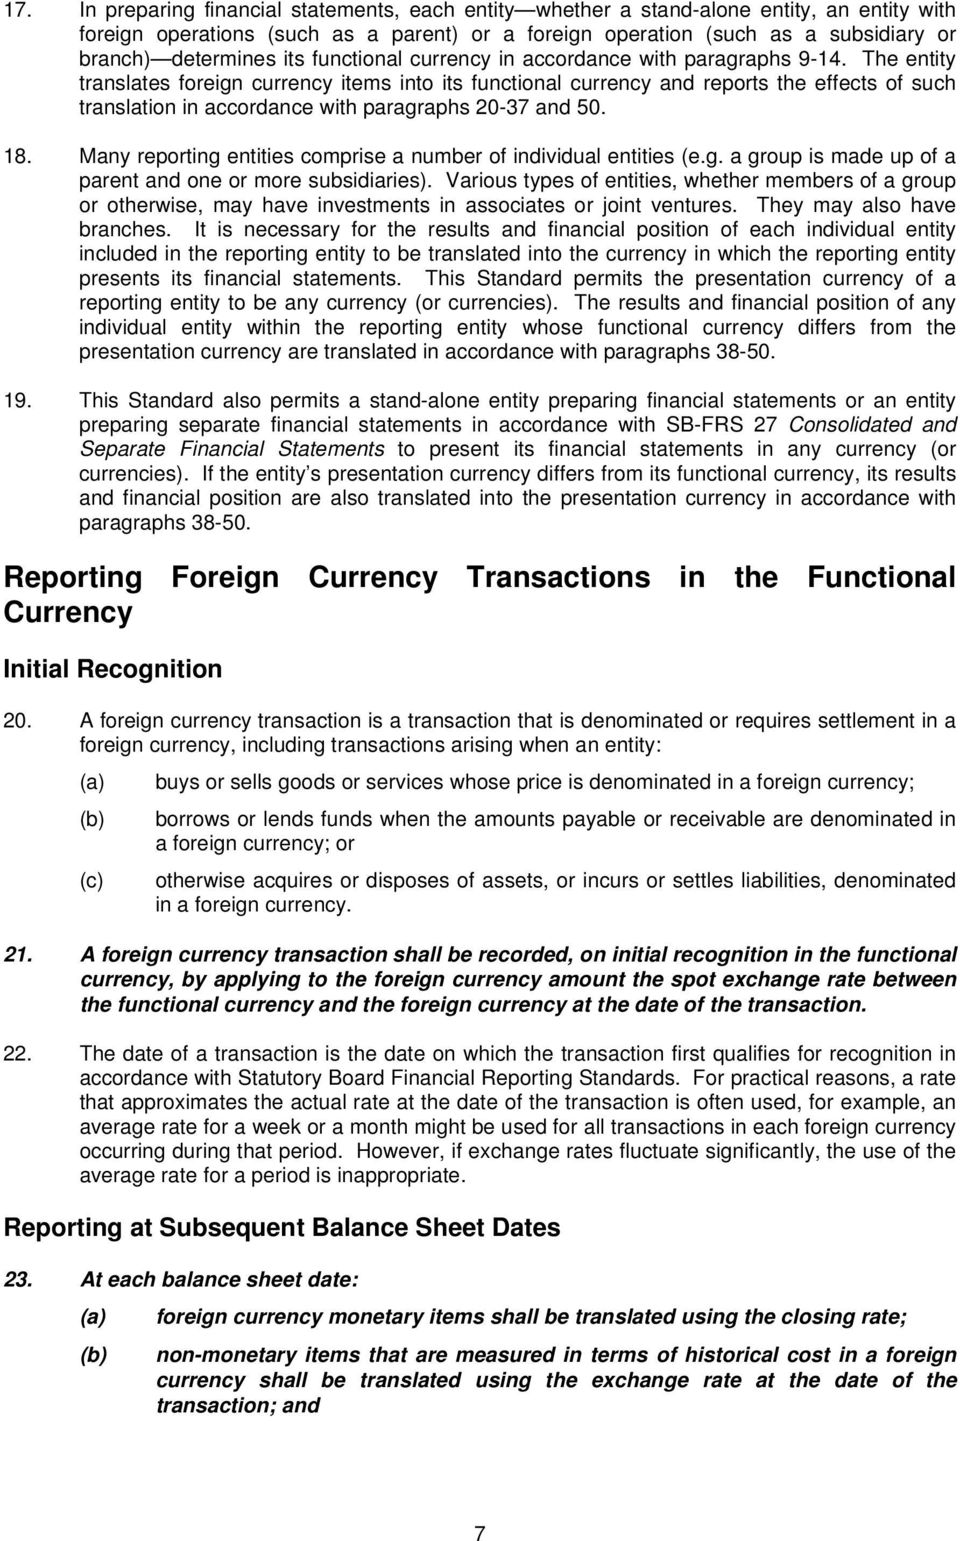 The entity translates foreign currency items into its functional currency and reports the effects of such translation in accordance with paragraphs 20-37 and 50. 18.